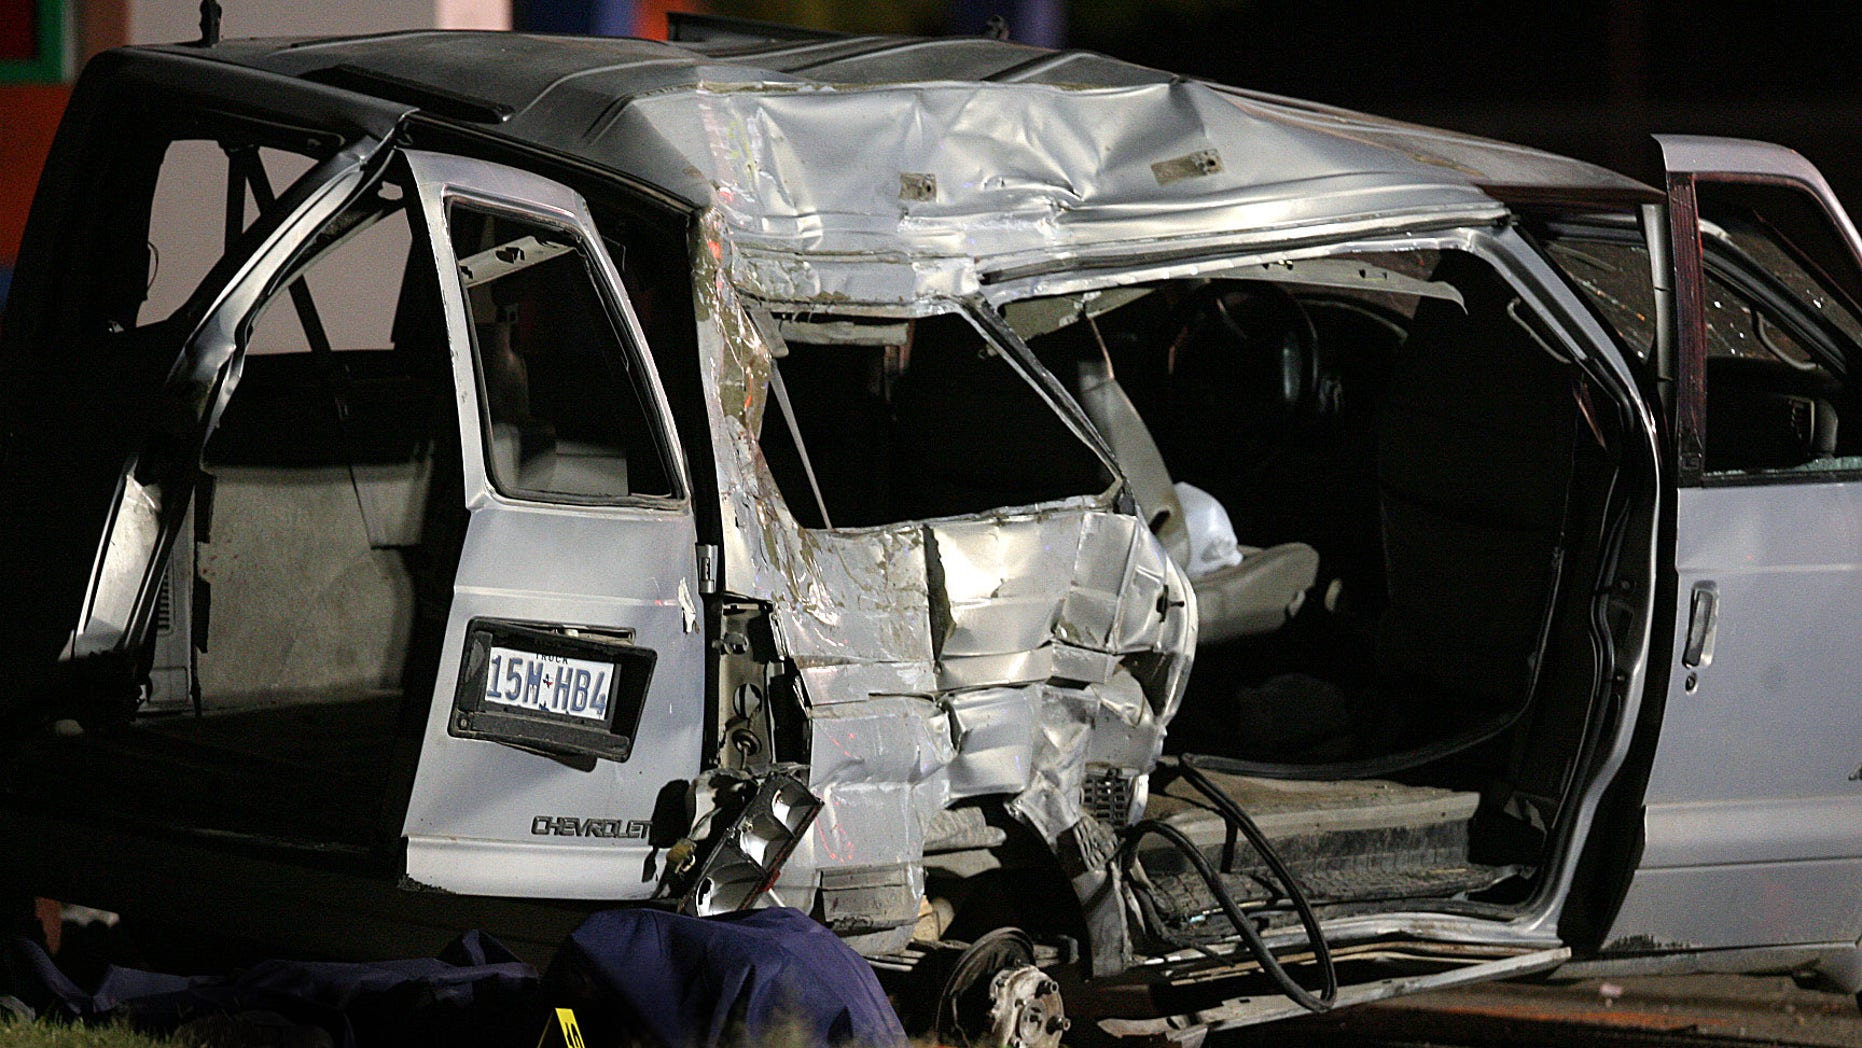 April 11: A 15-year-old boy is facing nine counts of murder after crashing a van carrying suspected illegal immigrants.